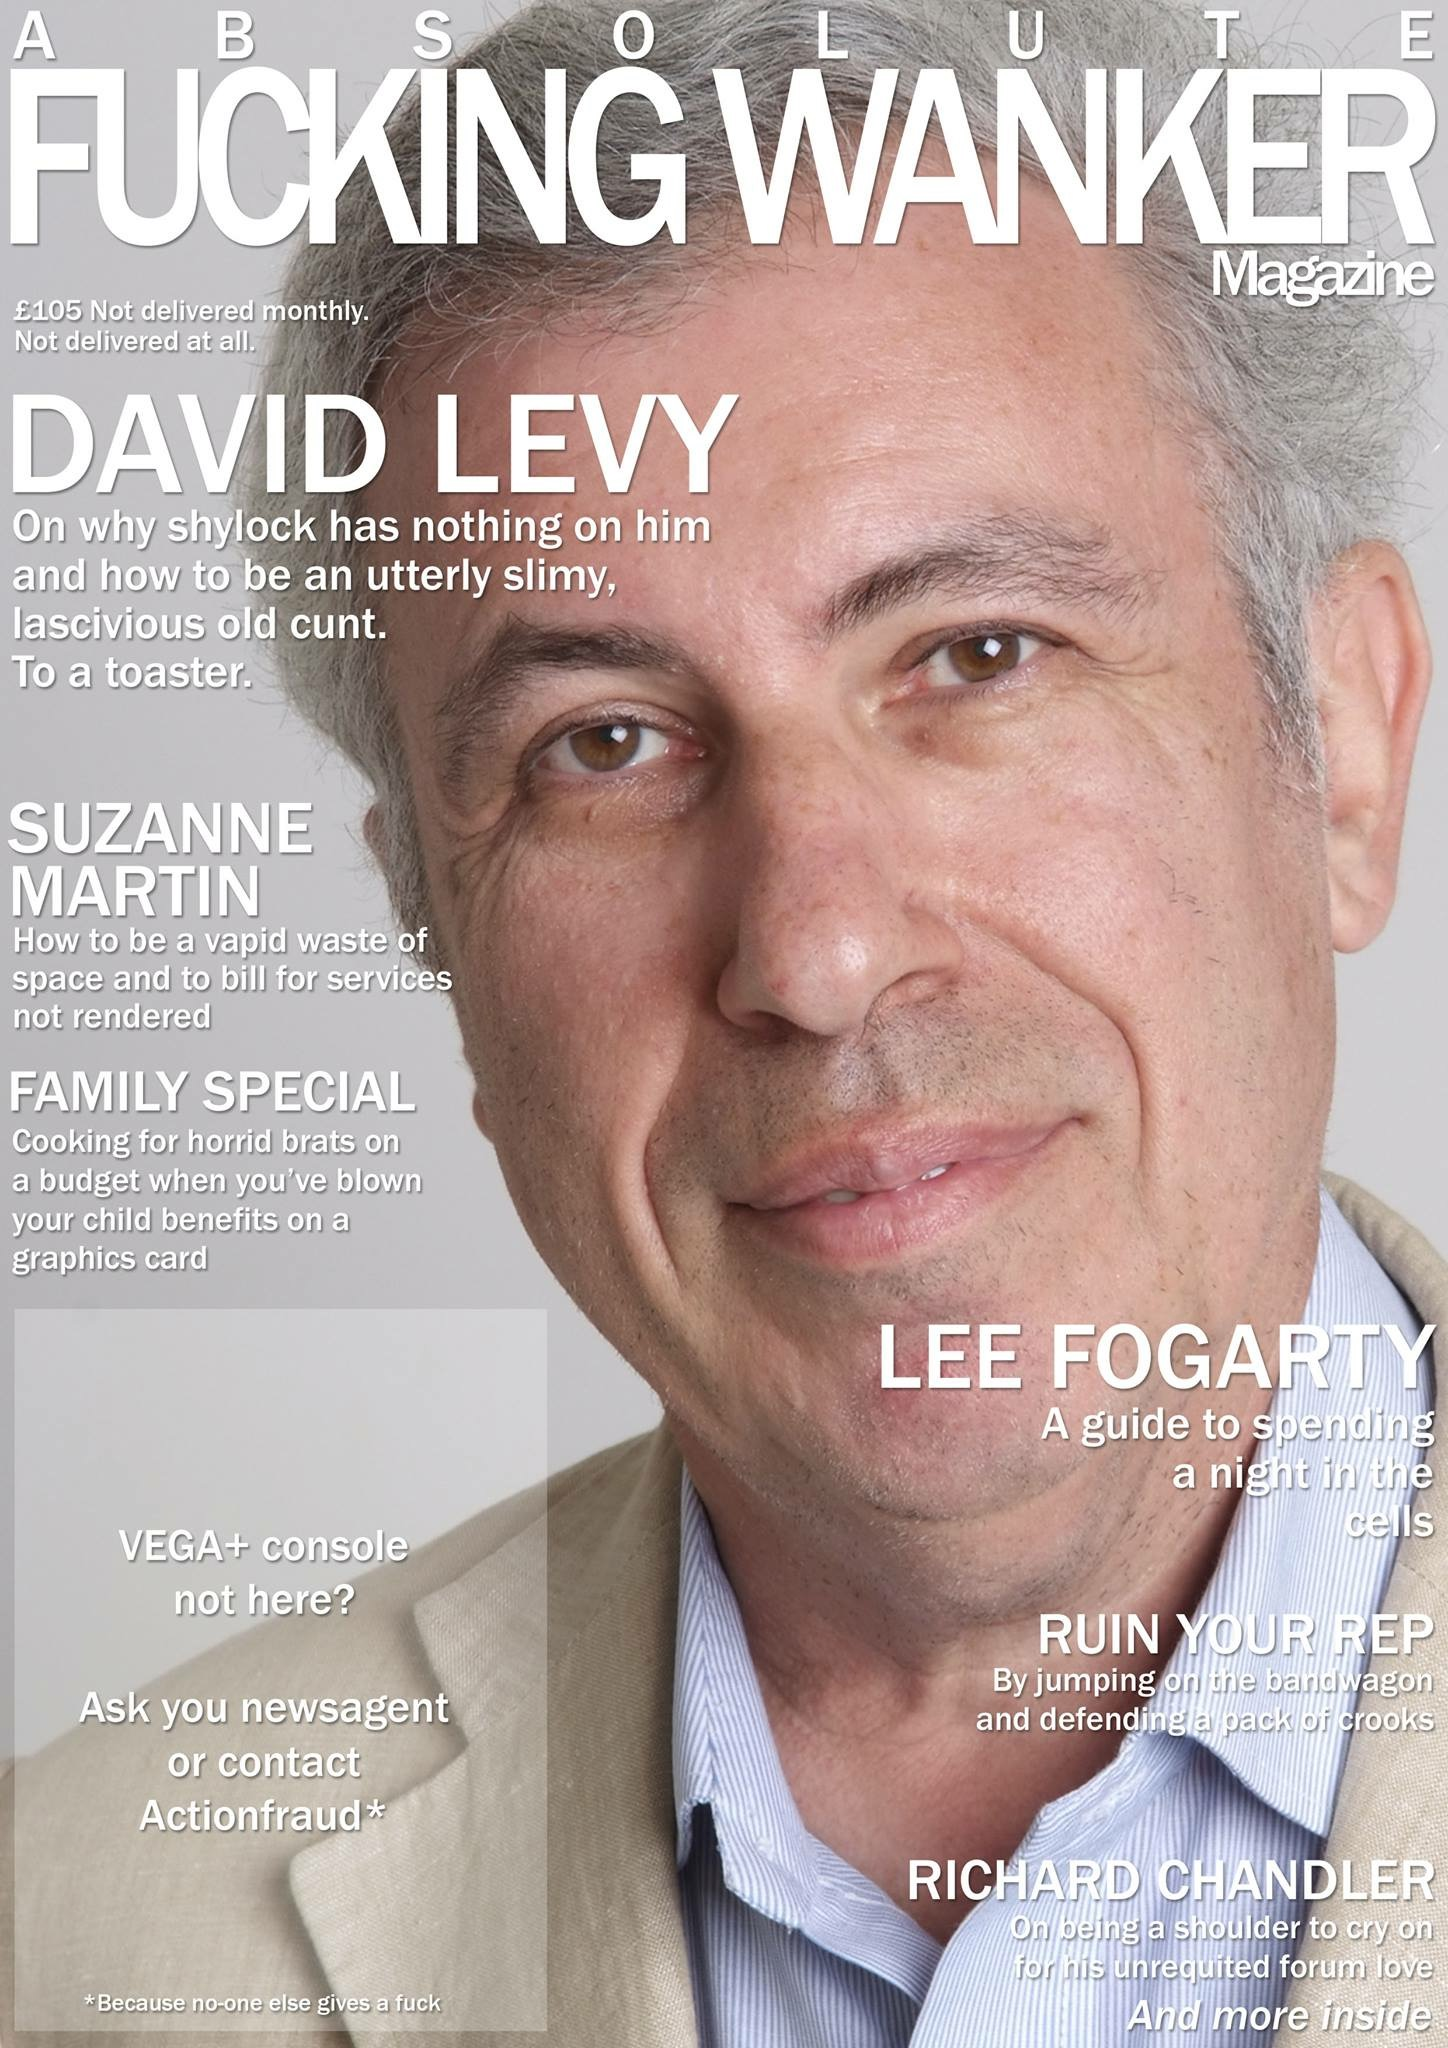 David Levy on the cover of AFW magazine